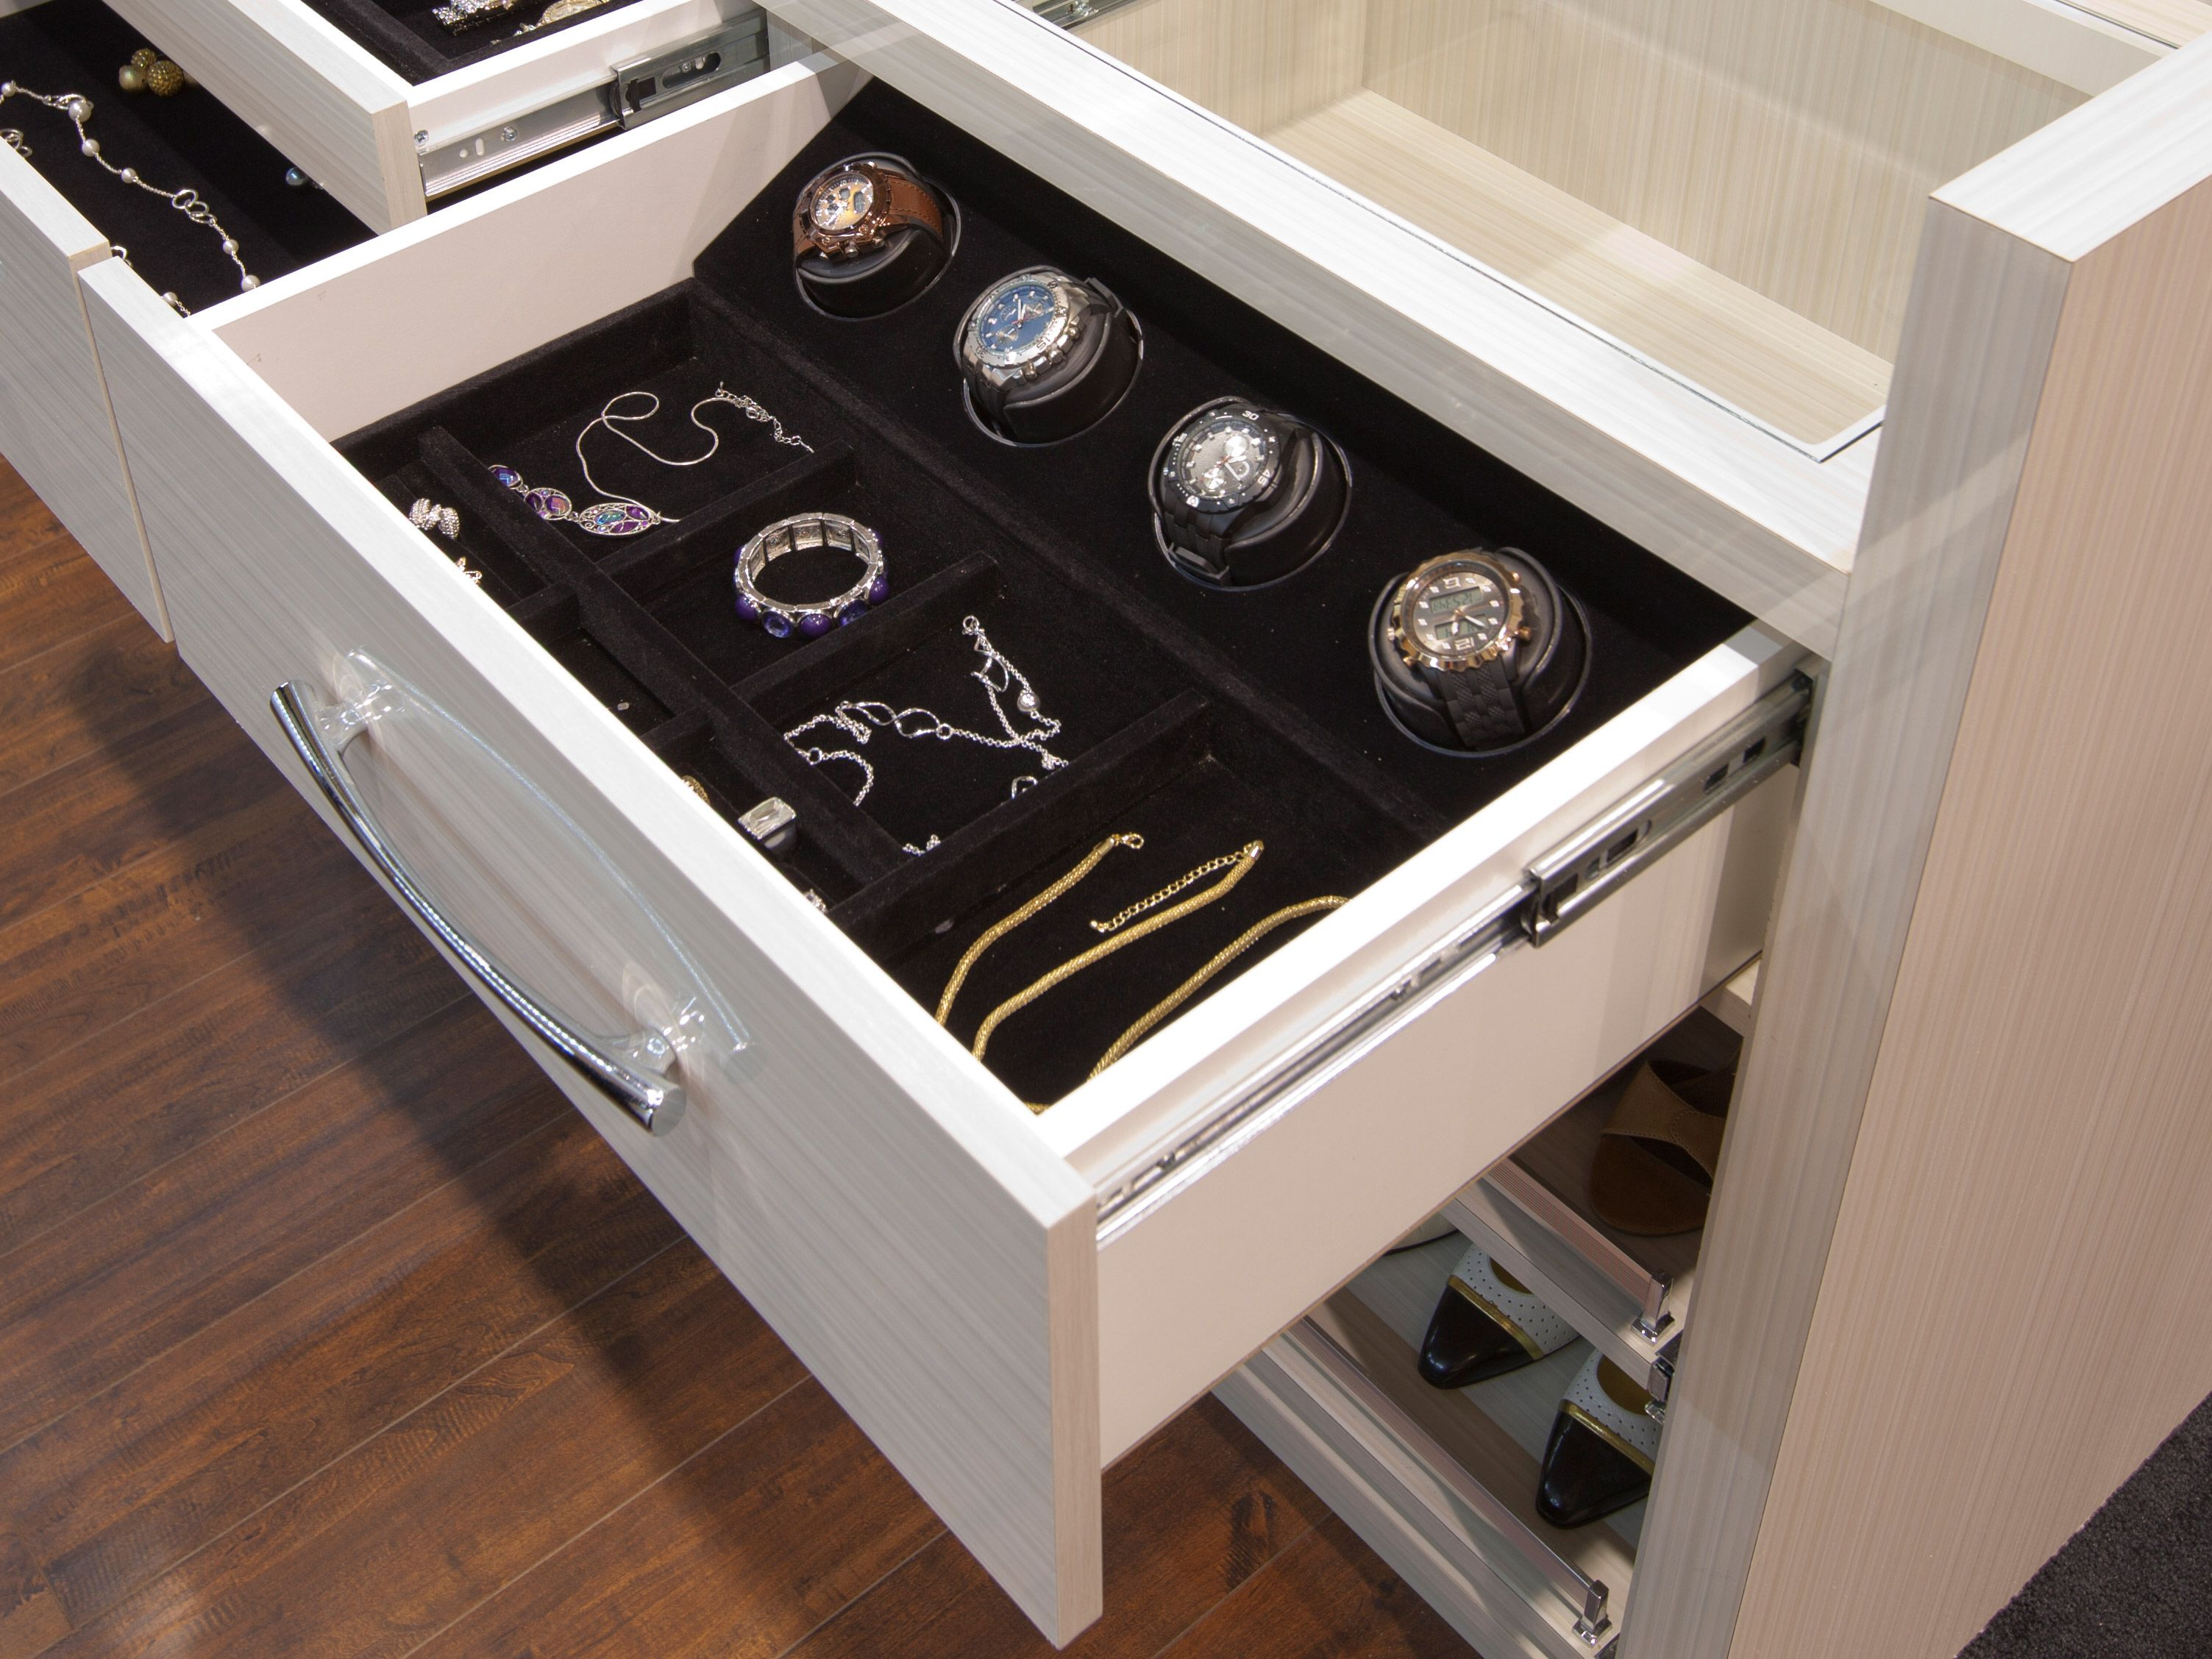 Customize Your Closet With Retractable Valet Rods, Jewellery Drawers, Watch  Winders, Pull Out Drawers, Hidden Laundry Hampers And More.